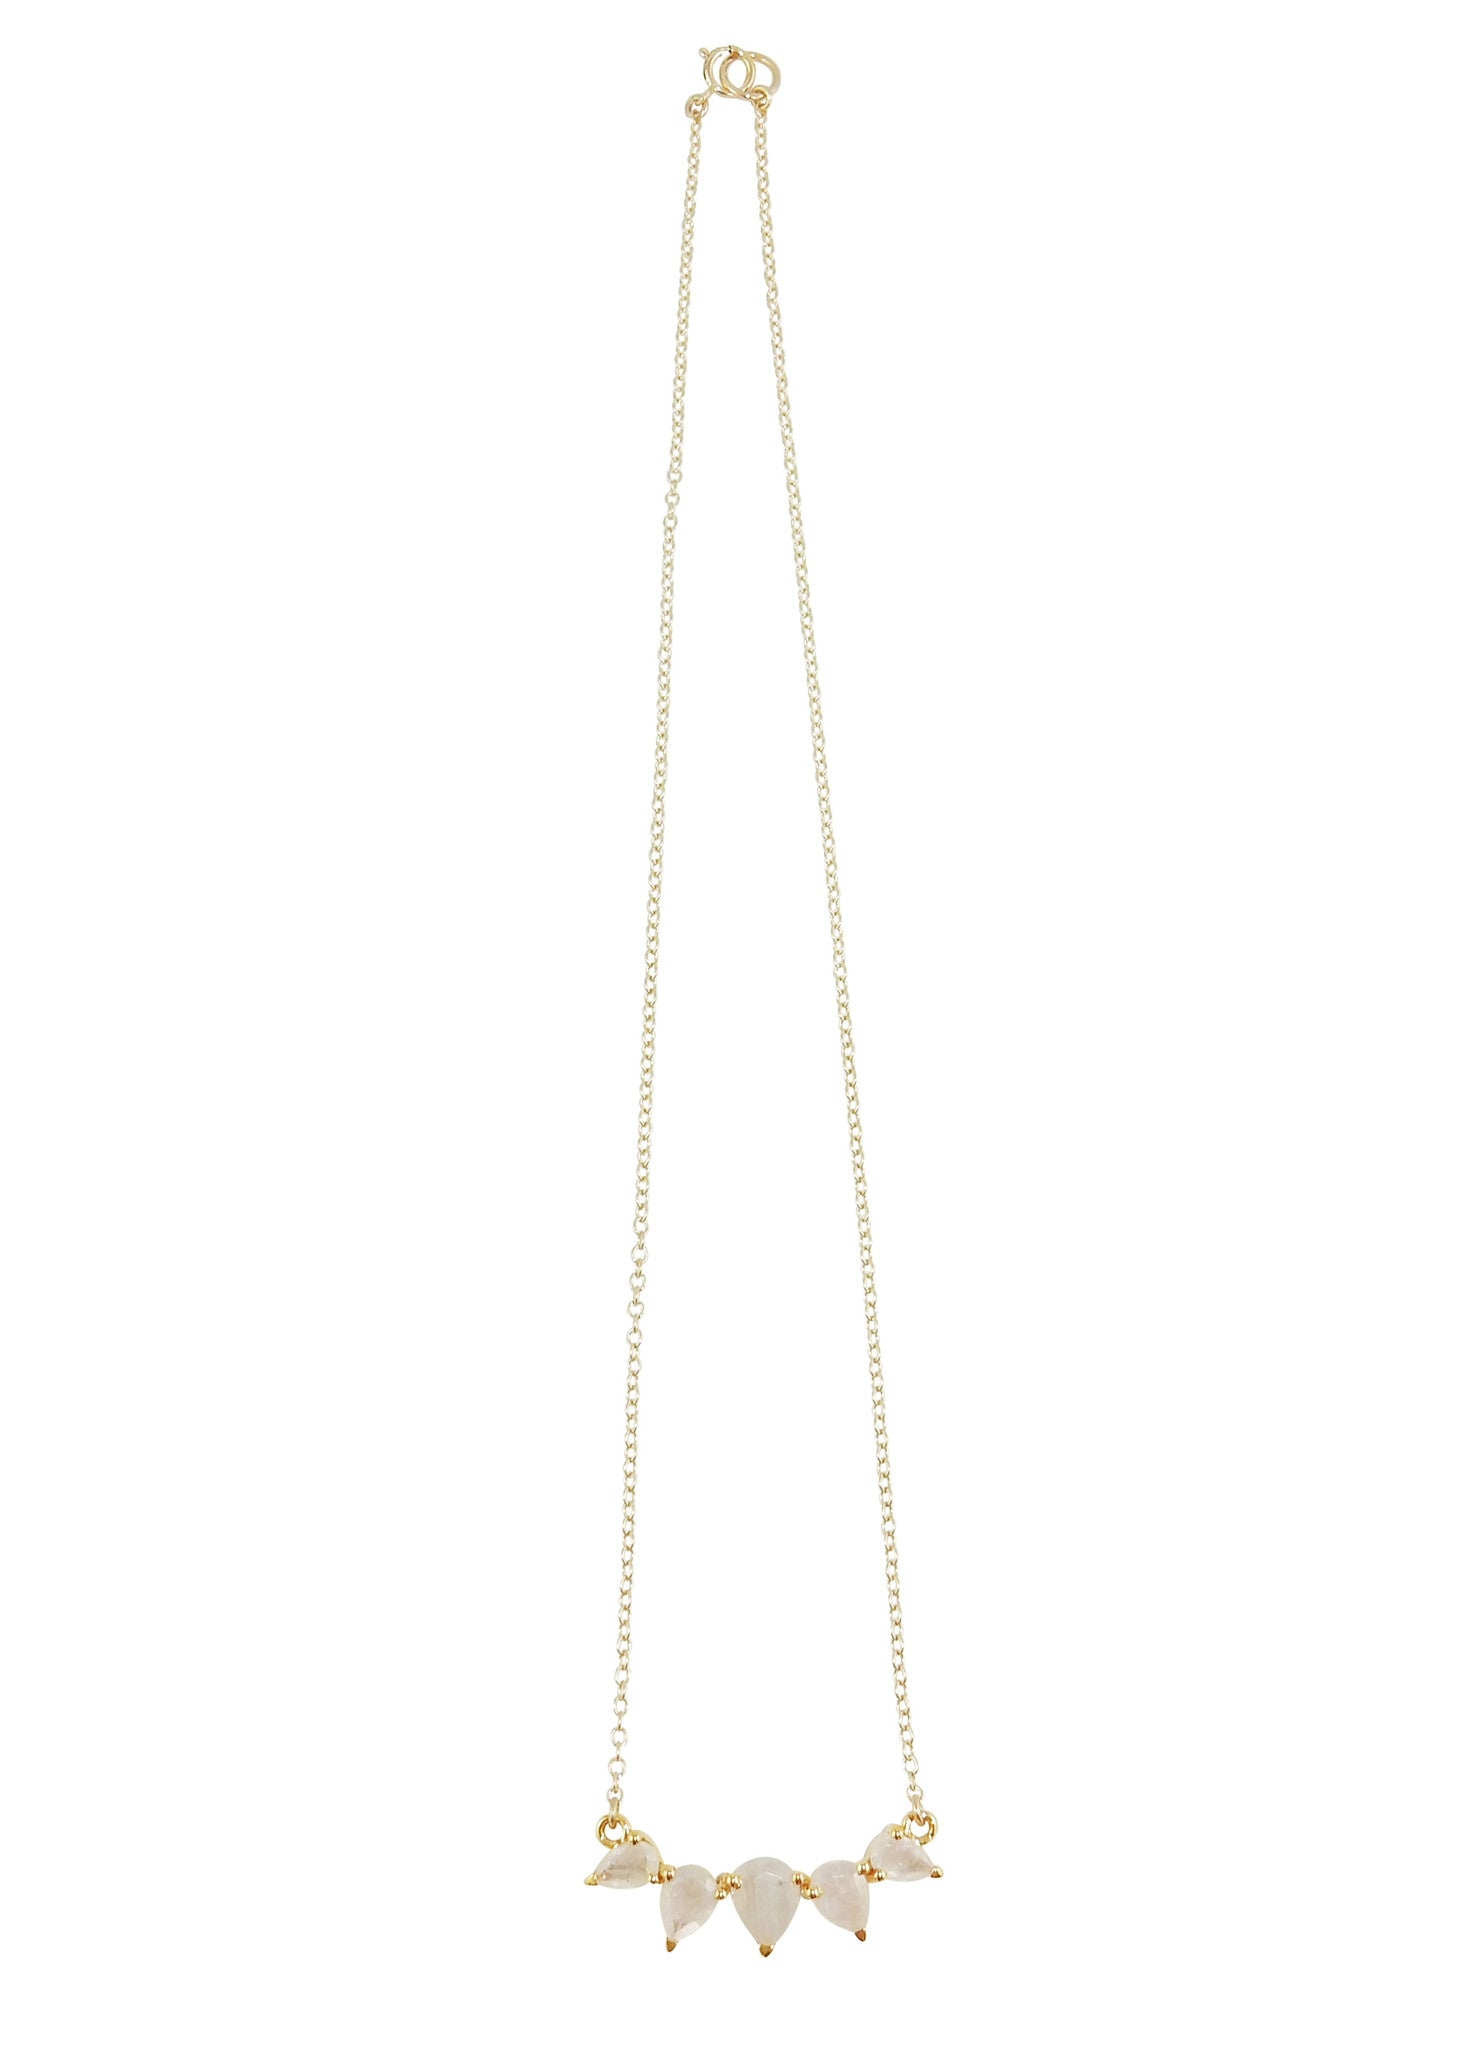 Leah Alexandra Moonstone Sunny Necklace